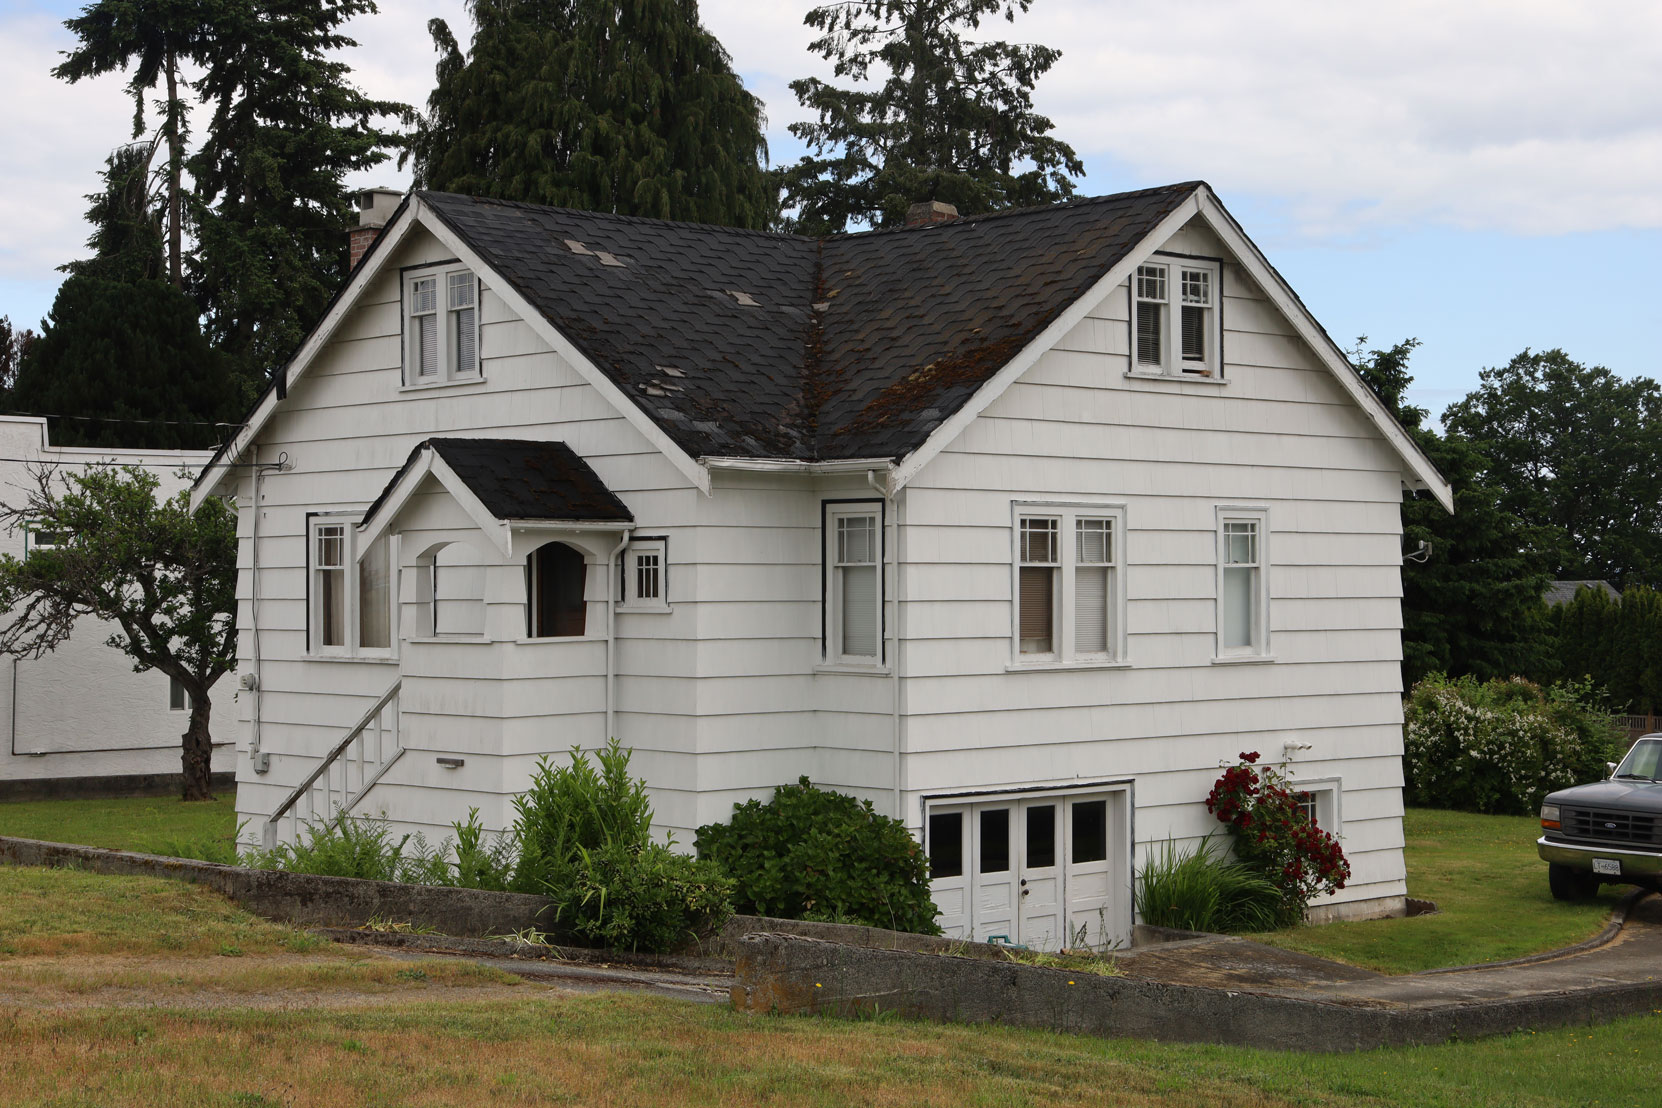 219 Methuen Street, Ladysmith, B.C., built in 1941 (photo: Mark Anderson)